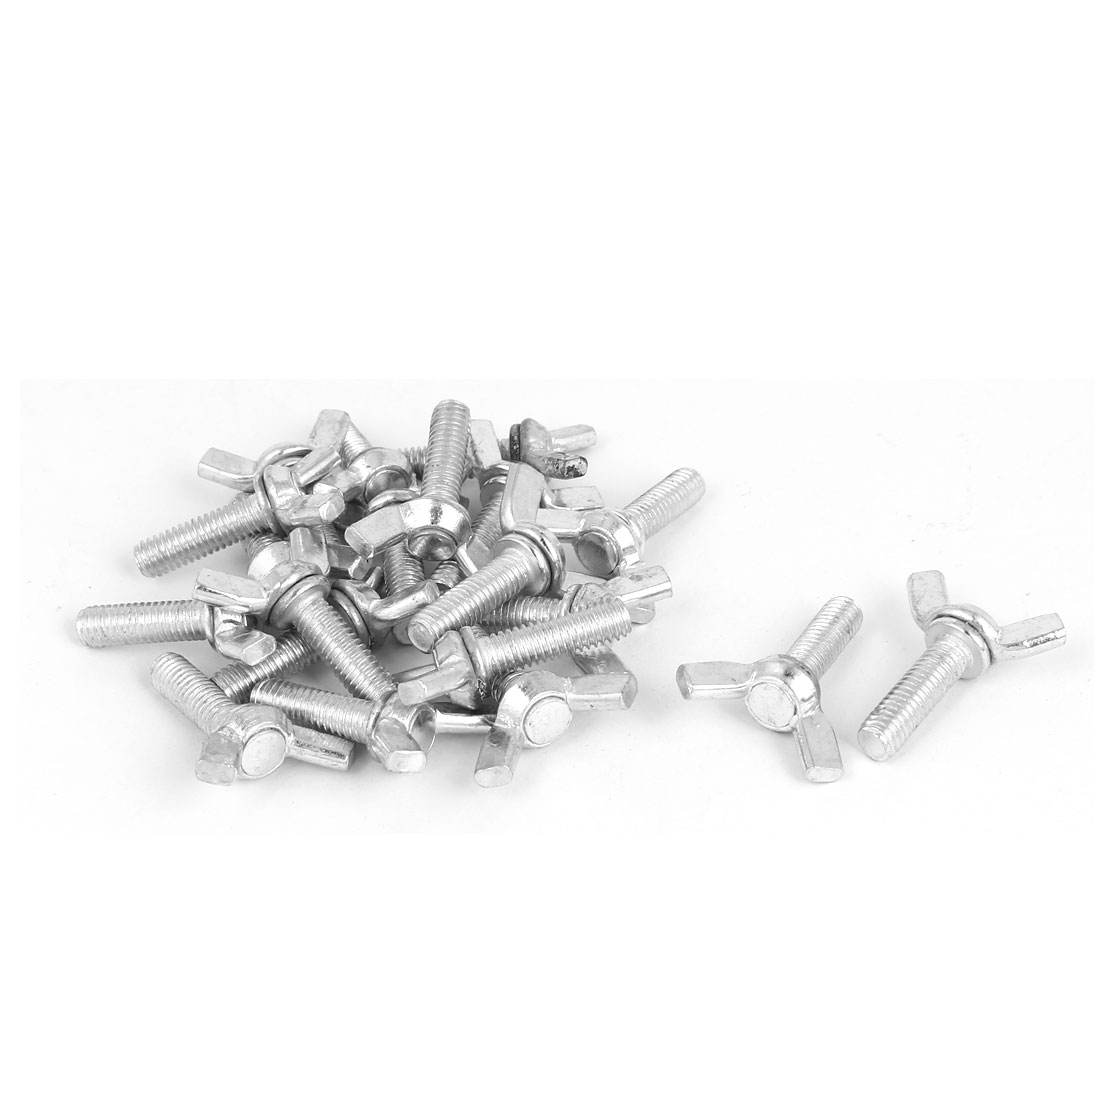 M6x20mm Thread Carbon Steel Wing Bolt Butterfly Screws Silver Tone 20pcs